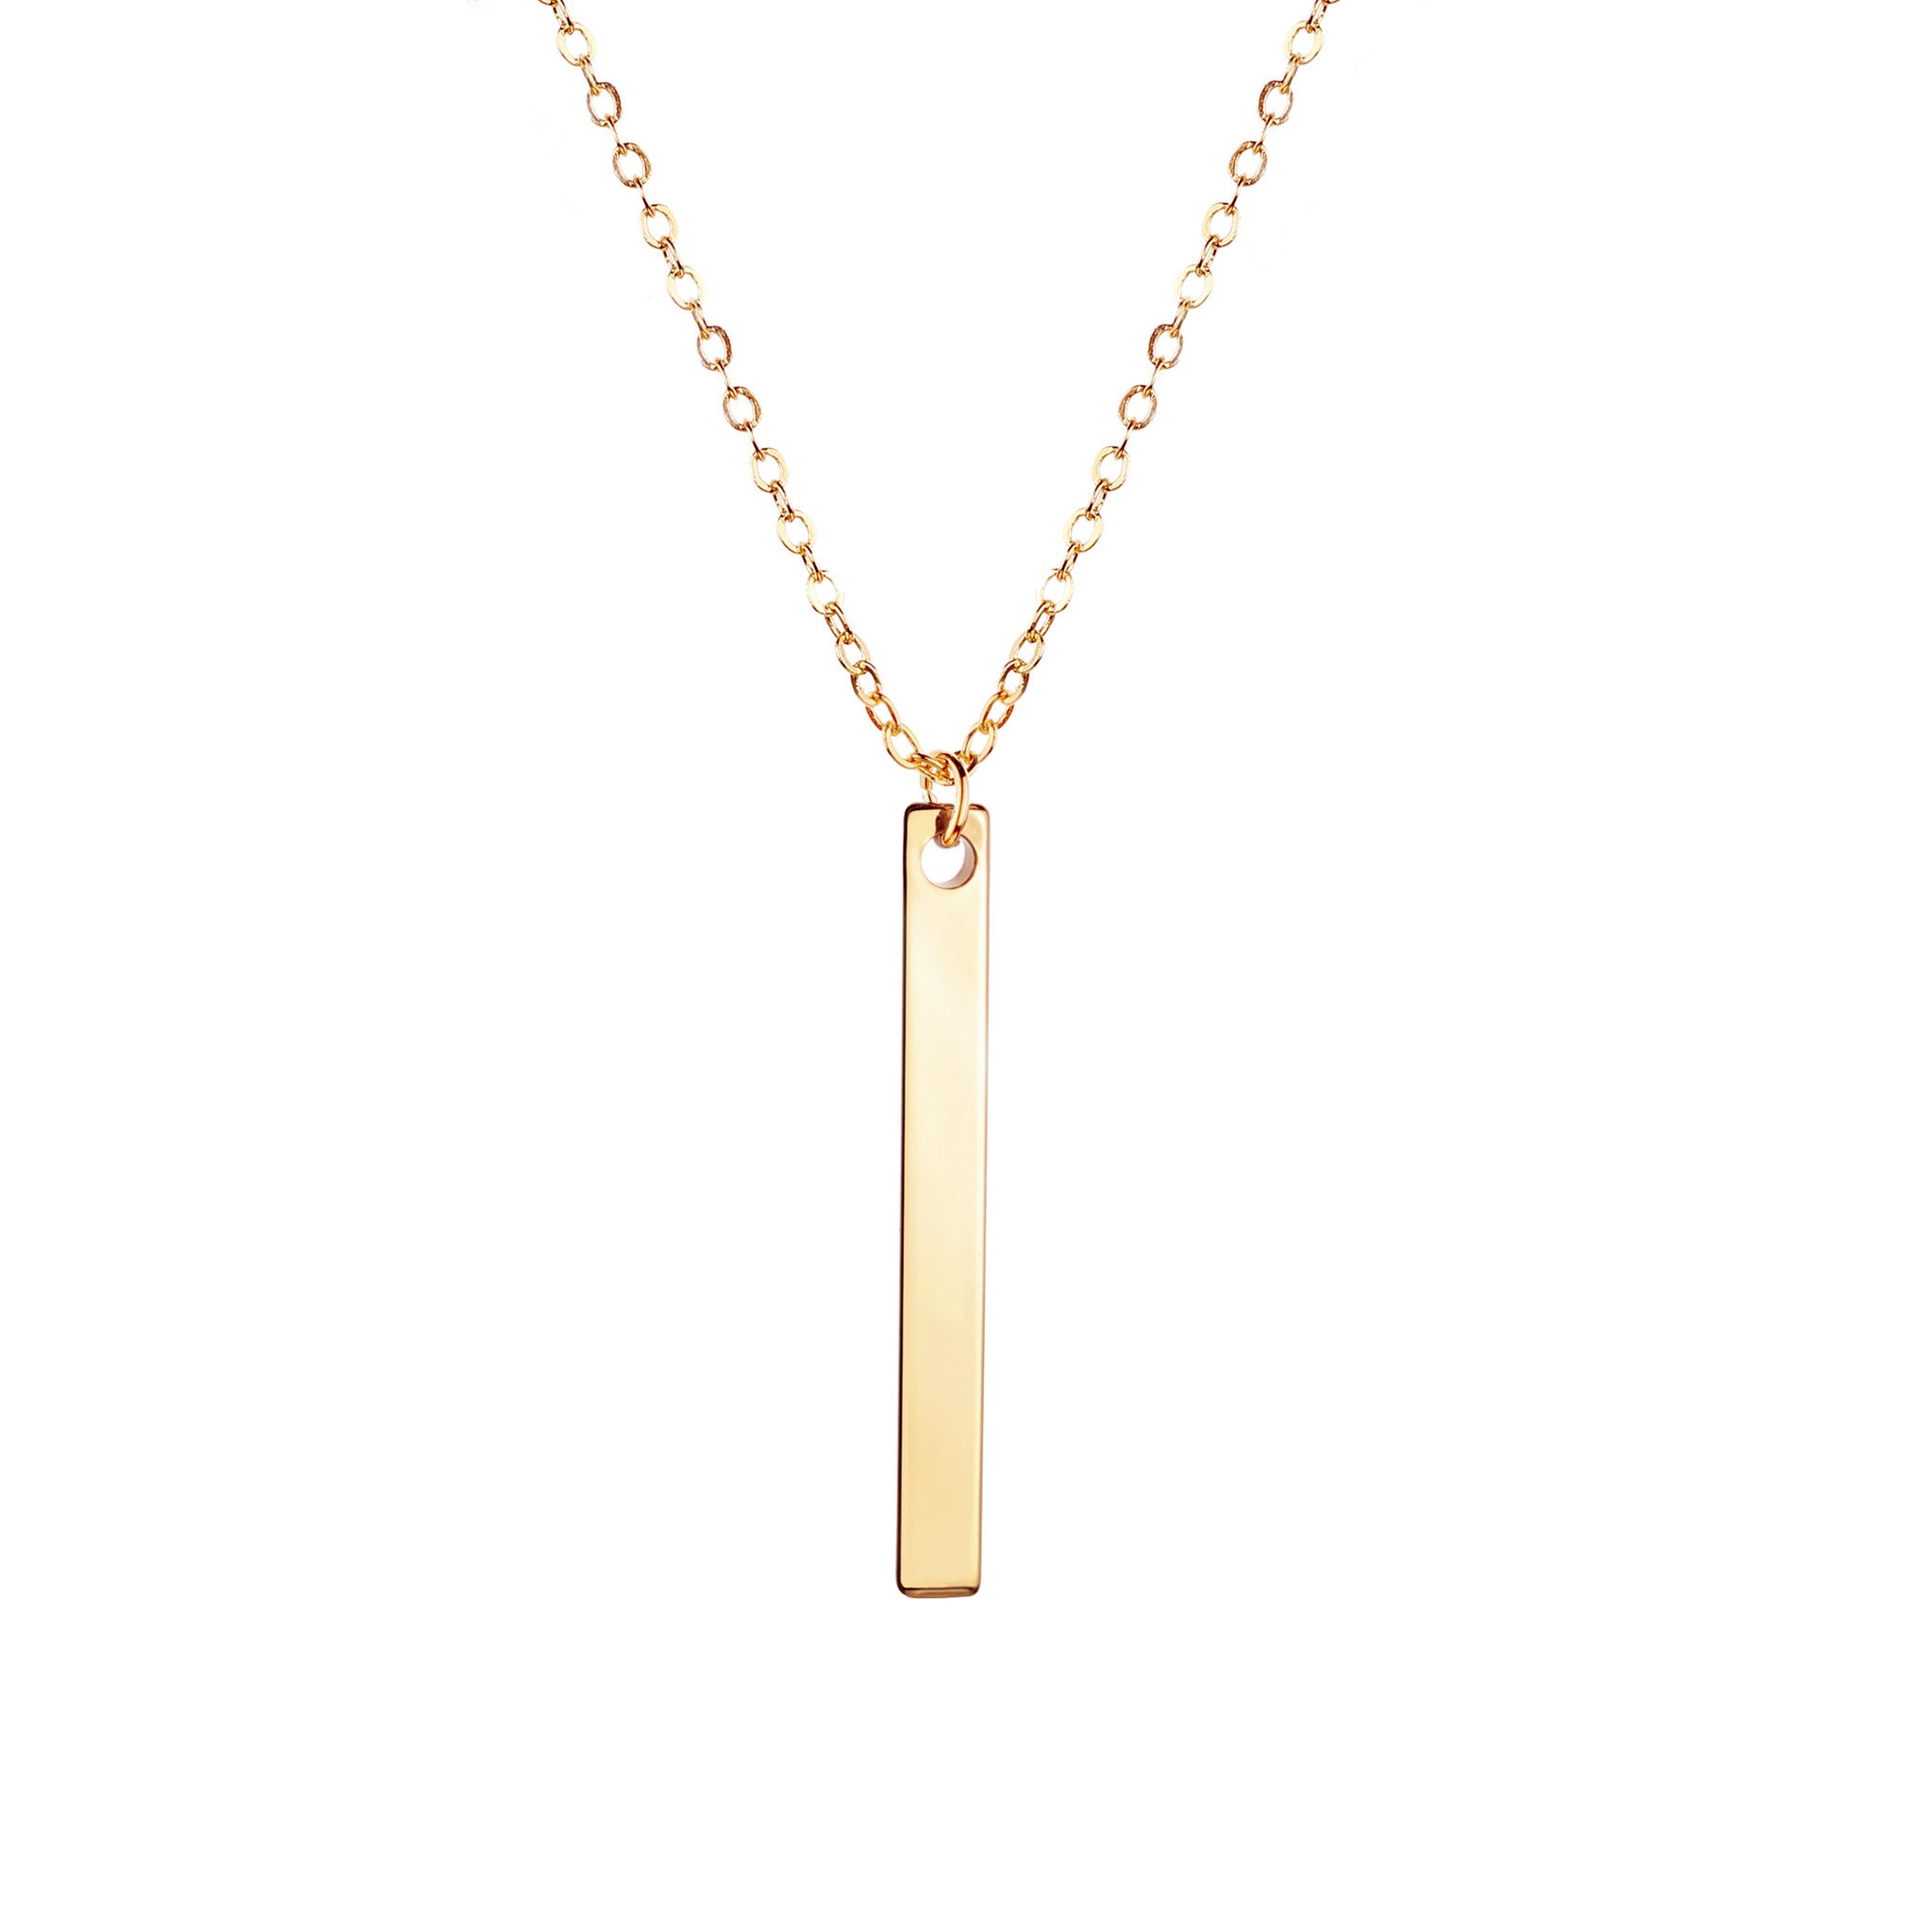 engraved horizontal img bar product inspirational skinny pendant necklace rose gold